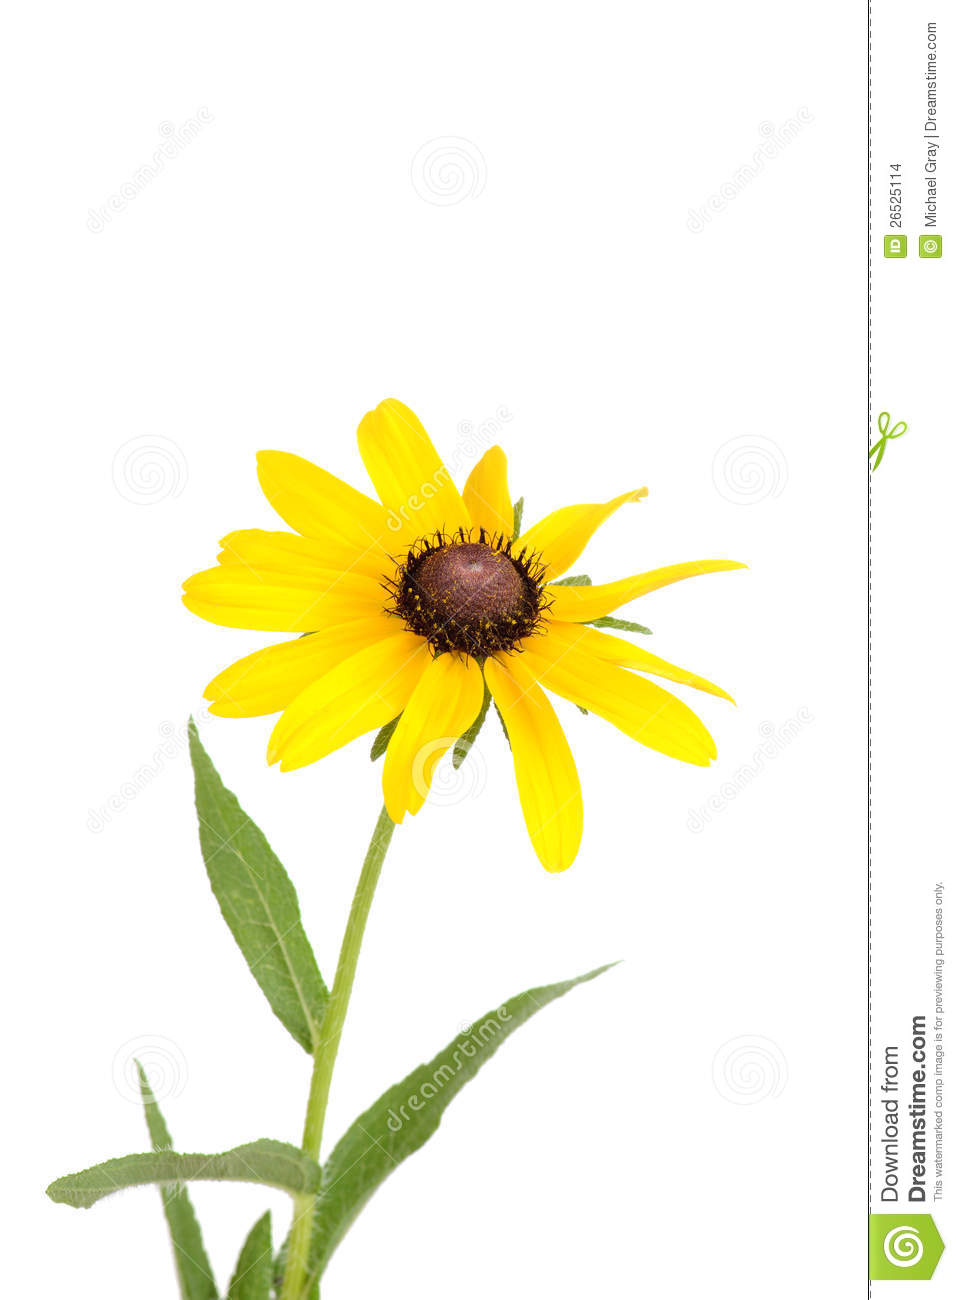 Isolated Black Eyed Susan Flower Stock Images - Image: 26525114